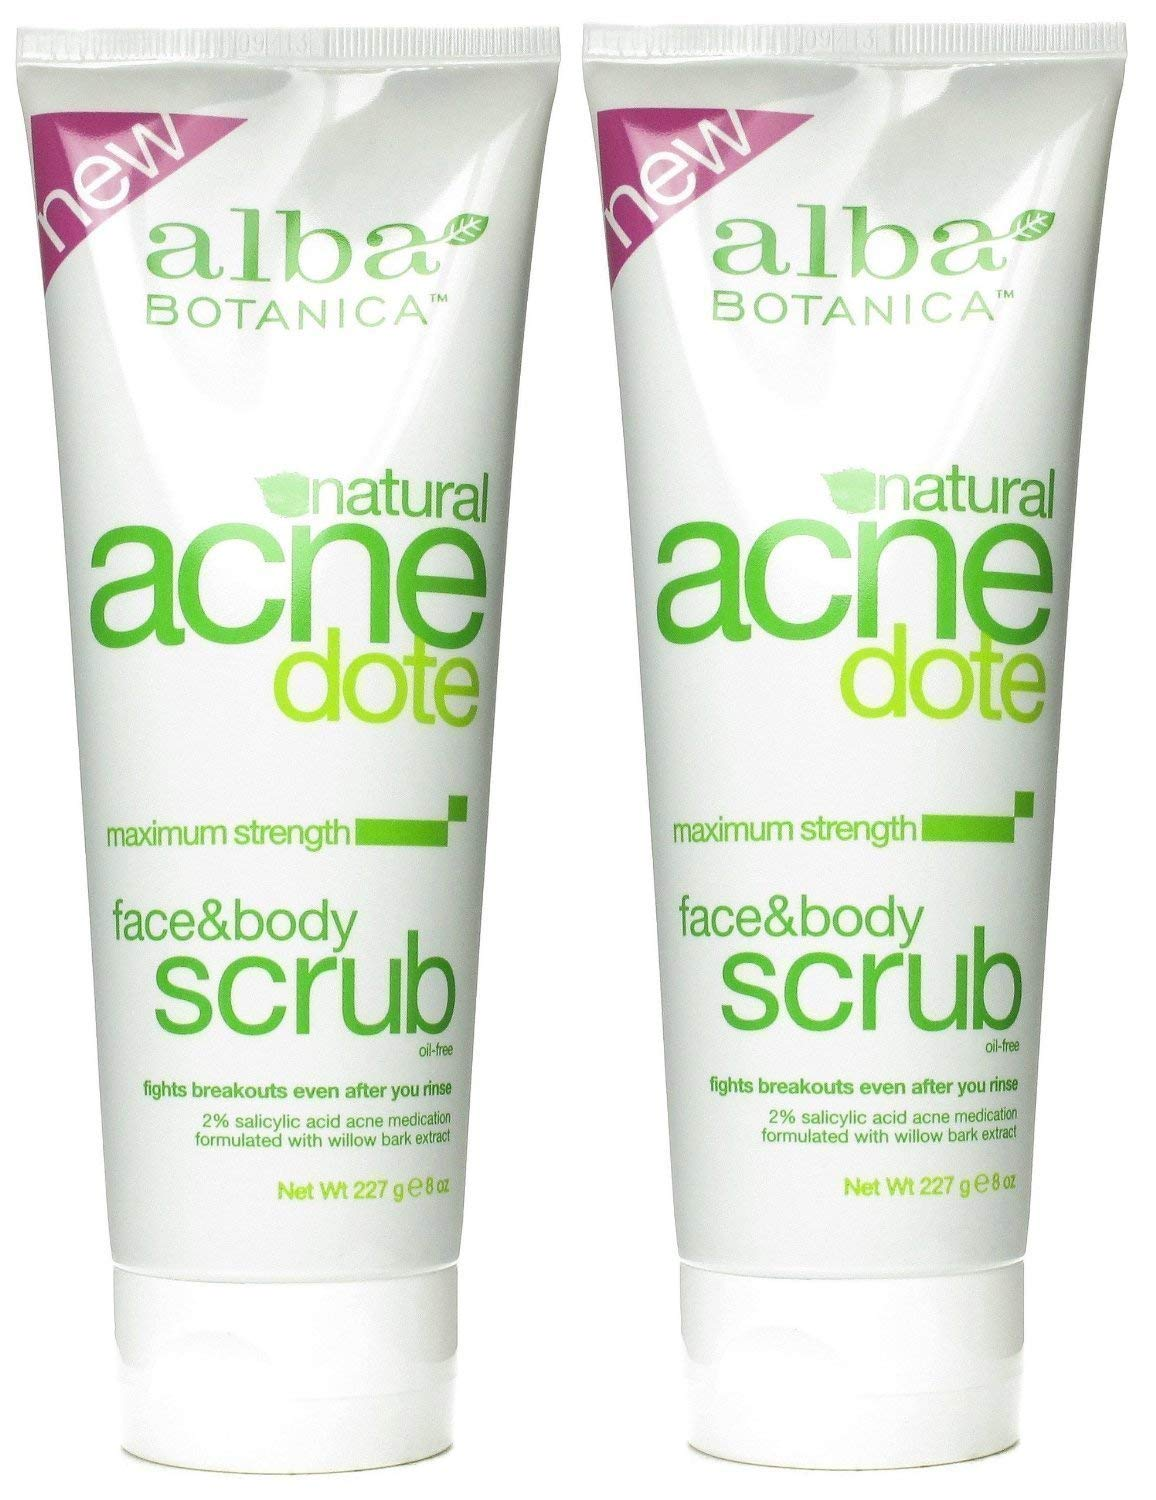 Alba Botanica ACNEdote Face & Body Scrub, 8 Ounces Tube (Pack of 2)